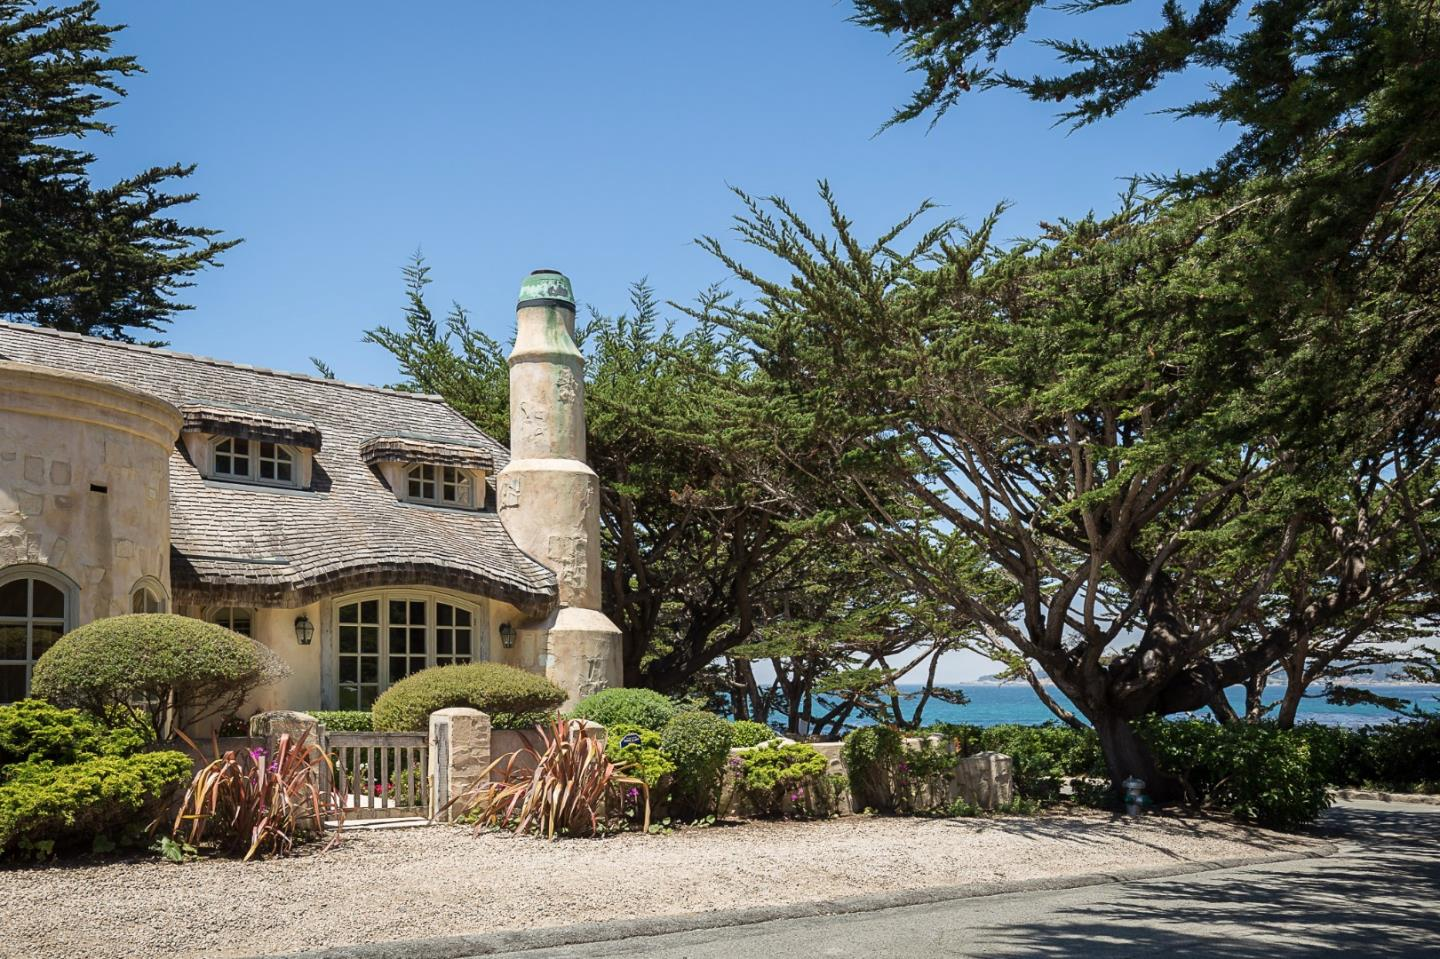 Storybook cottage for sale 26125 Scenic Rd Carmel, Ca